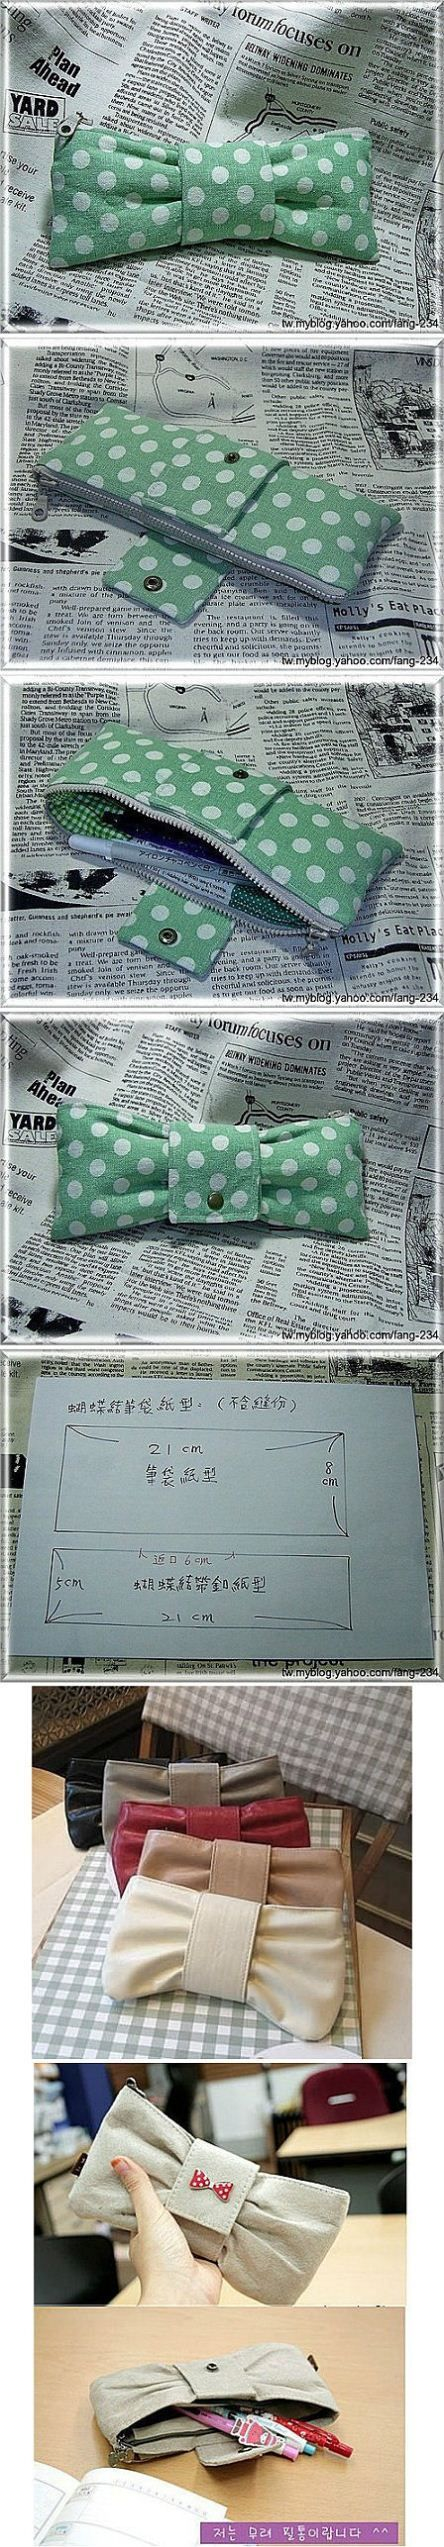 A massive compilation of the best creative and mind blowing pencil case designs you will ever set your eyes on. Want to upgrade your current stationery set? This will blow your mind - [http://theendearingdesigner.com/10-unique-creative-pencil-cases-designs-will-blow-mind/]